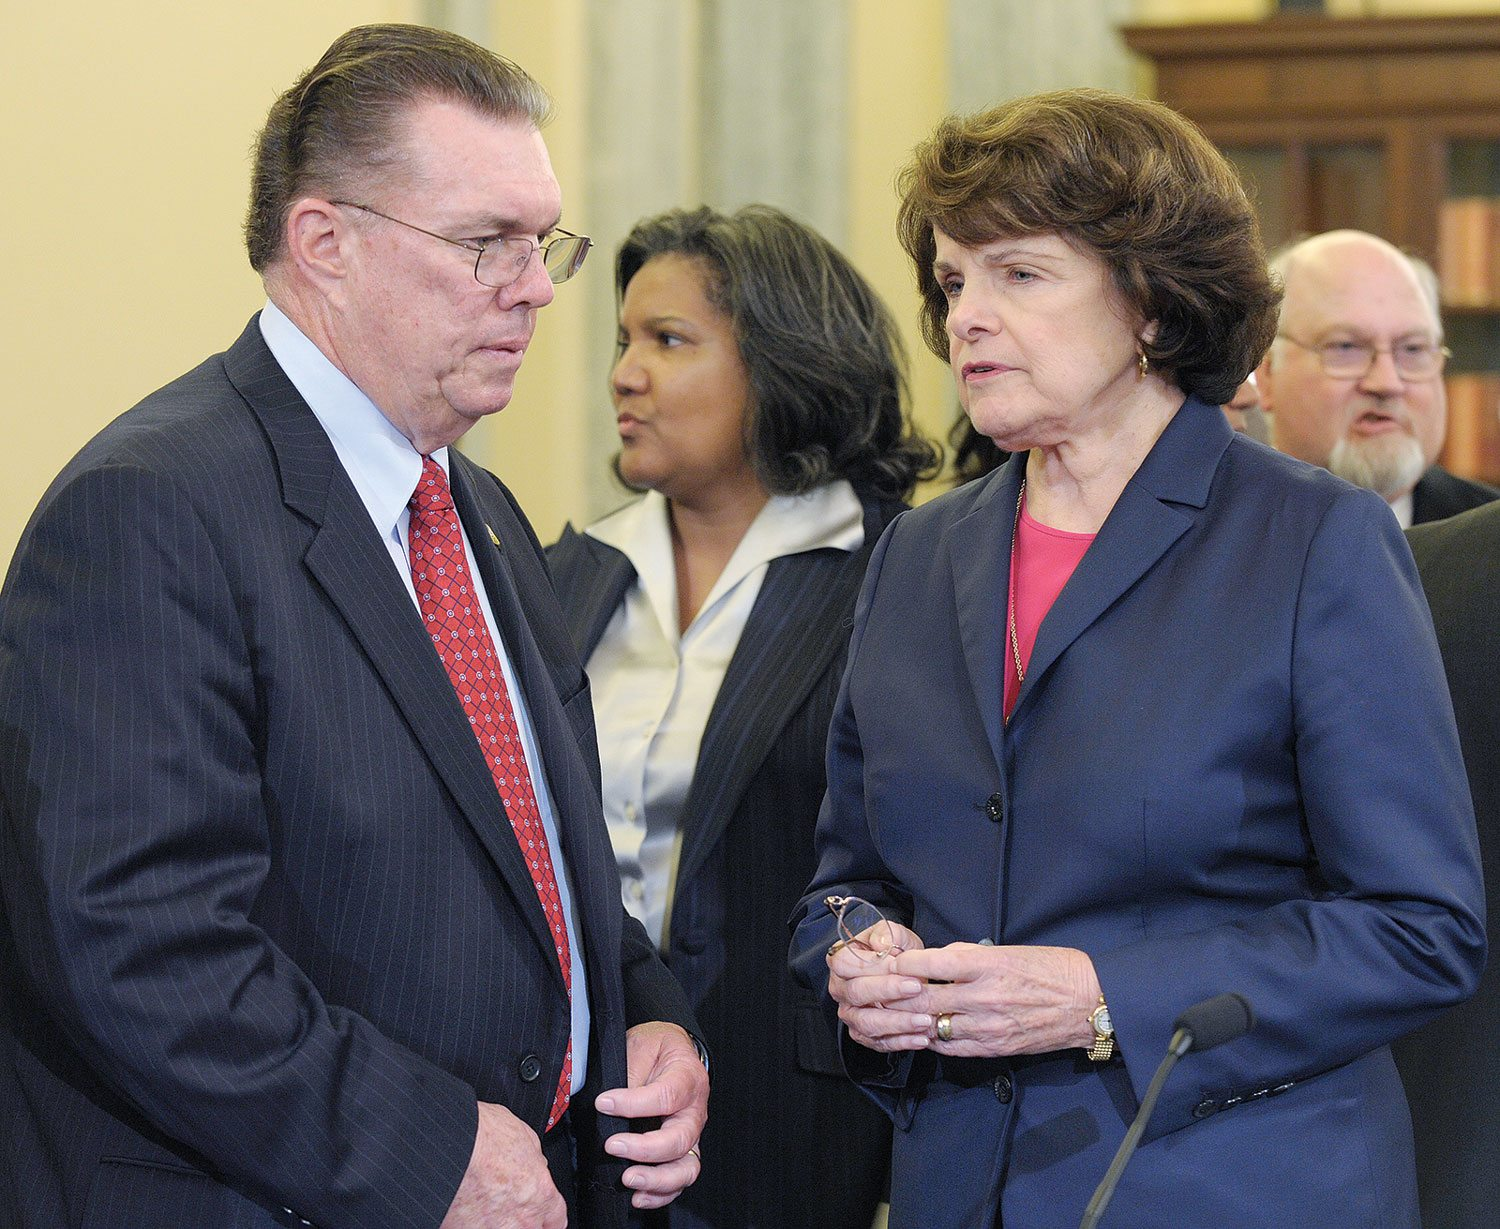 San Bruno Mayor Jim Ruane talks with Sen. Dianne Feinstein before a hearing on Capitol Hill in 2010 about the fatal gas pipeline explosion in his city.